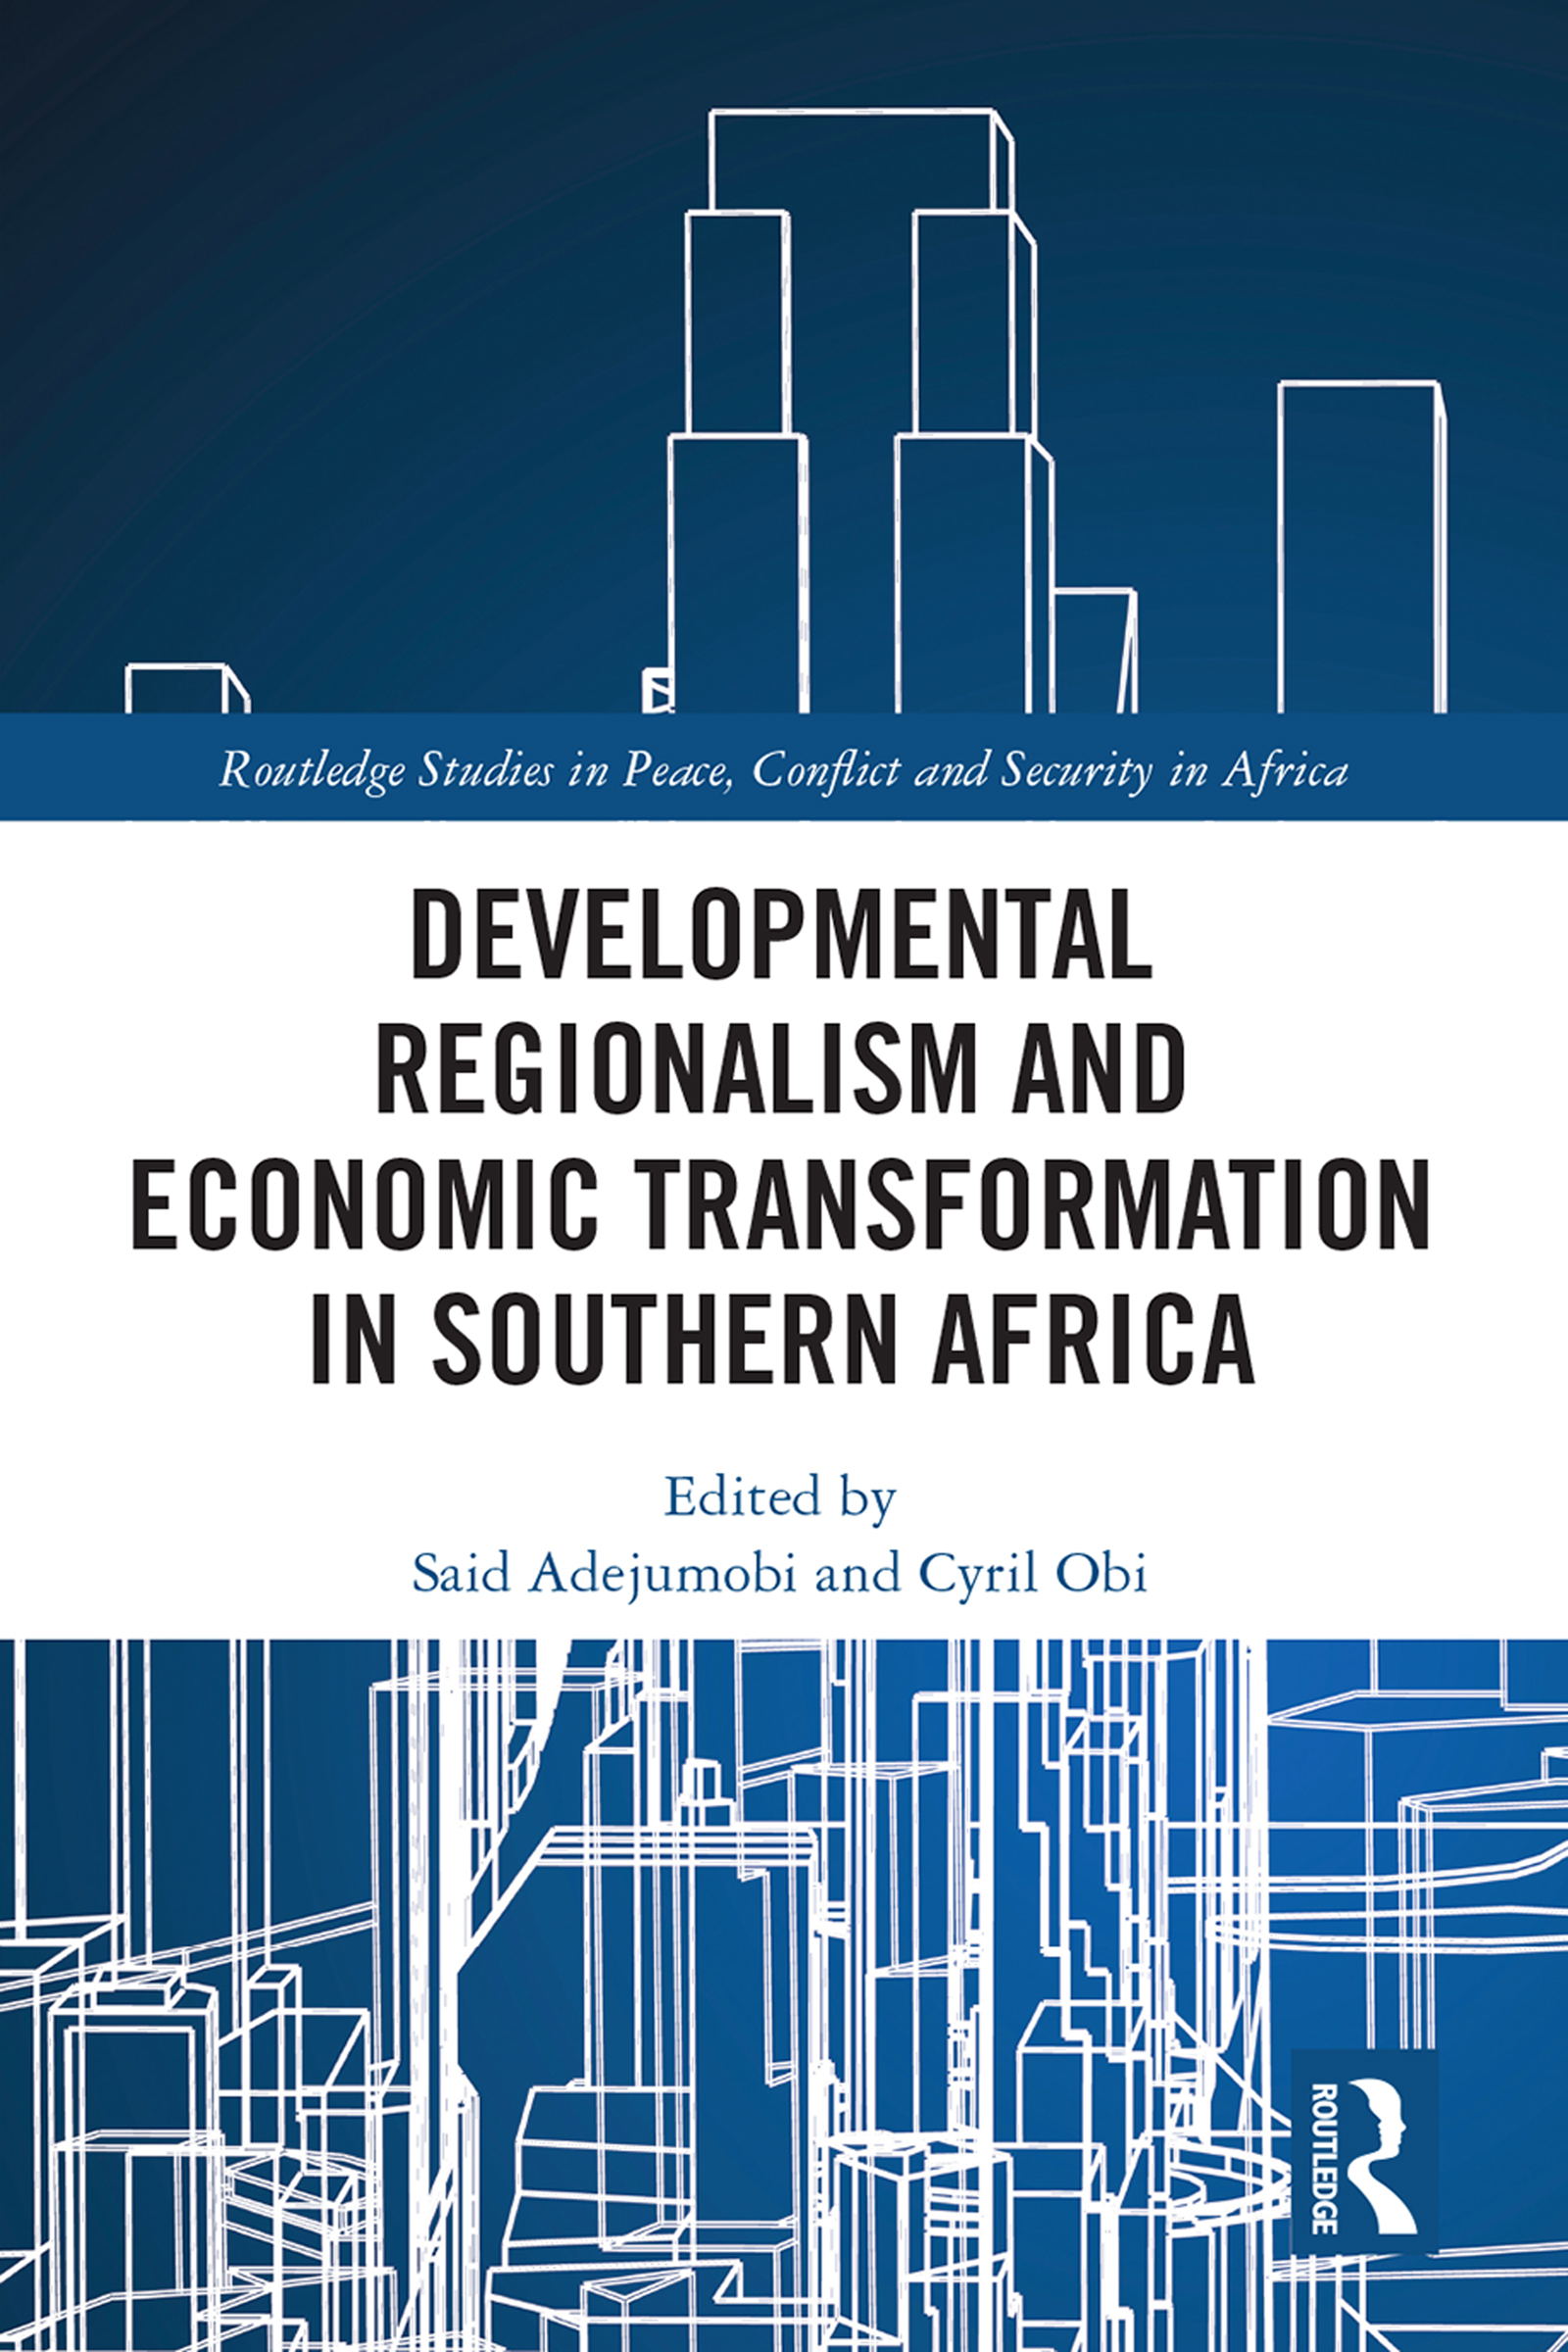 Agriculture and developmental regionalism in Southern Africa